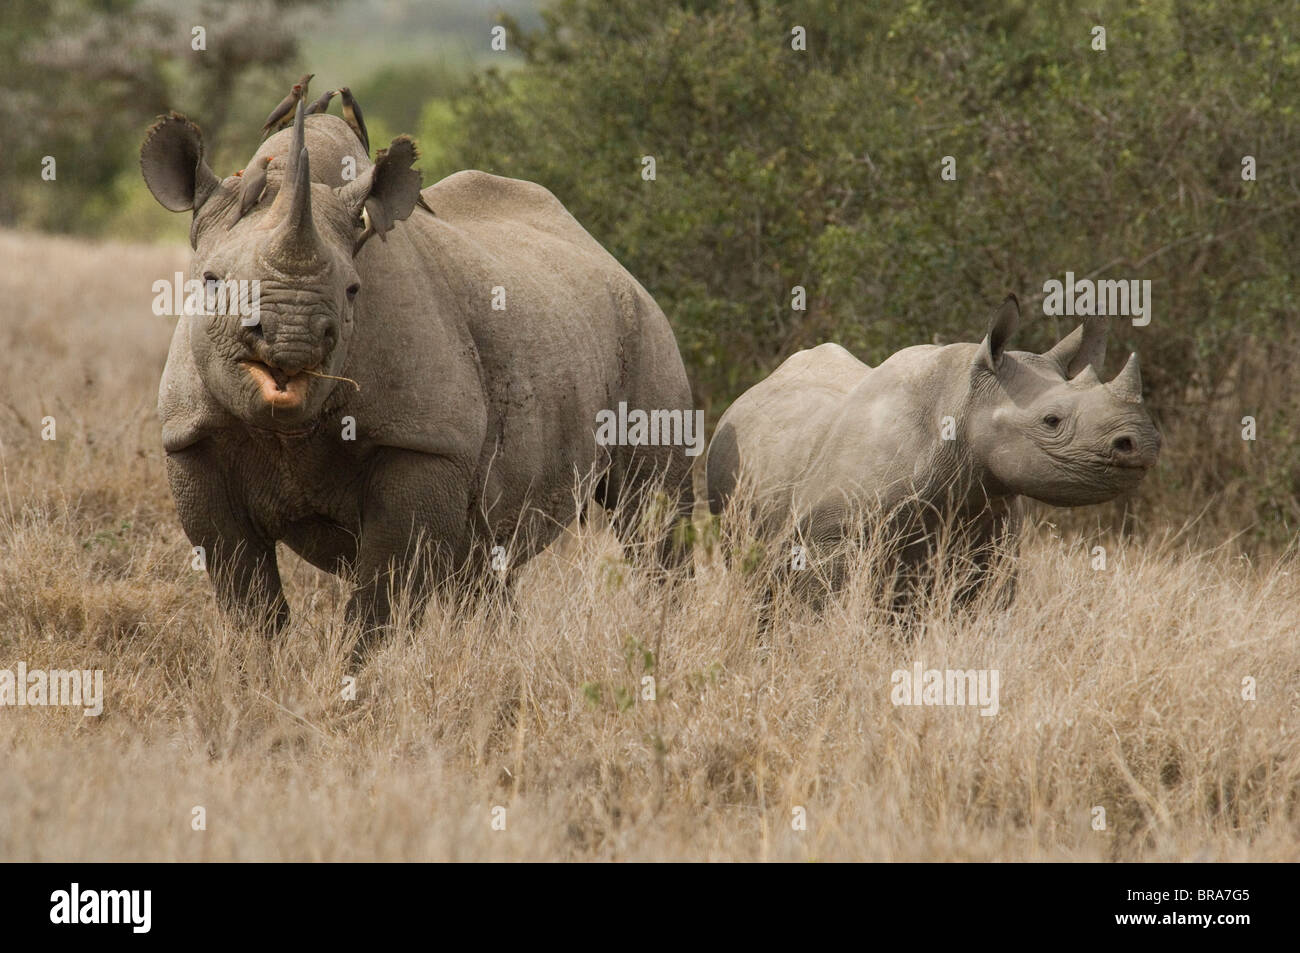 WHITE RHINOCEROS COW AND CALF TANZANIA AFRICA - Stock Image